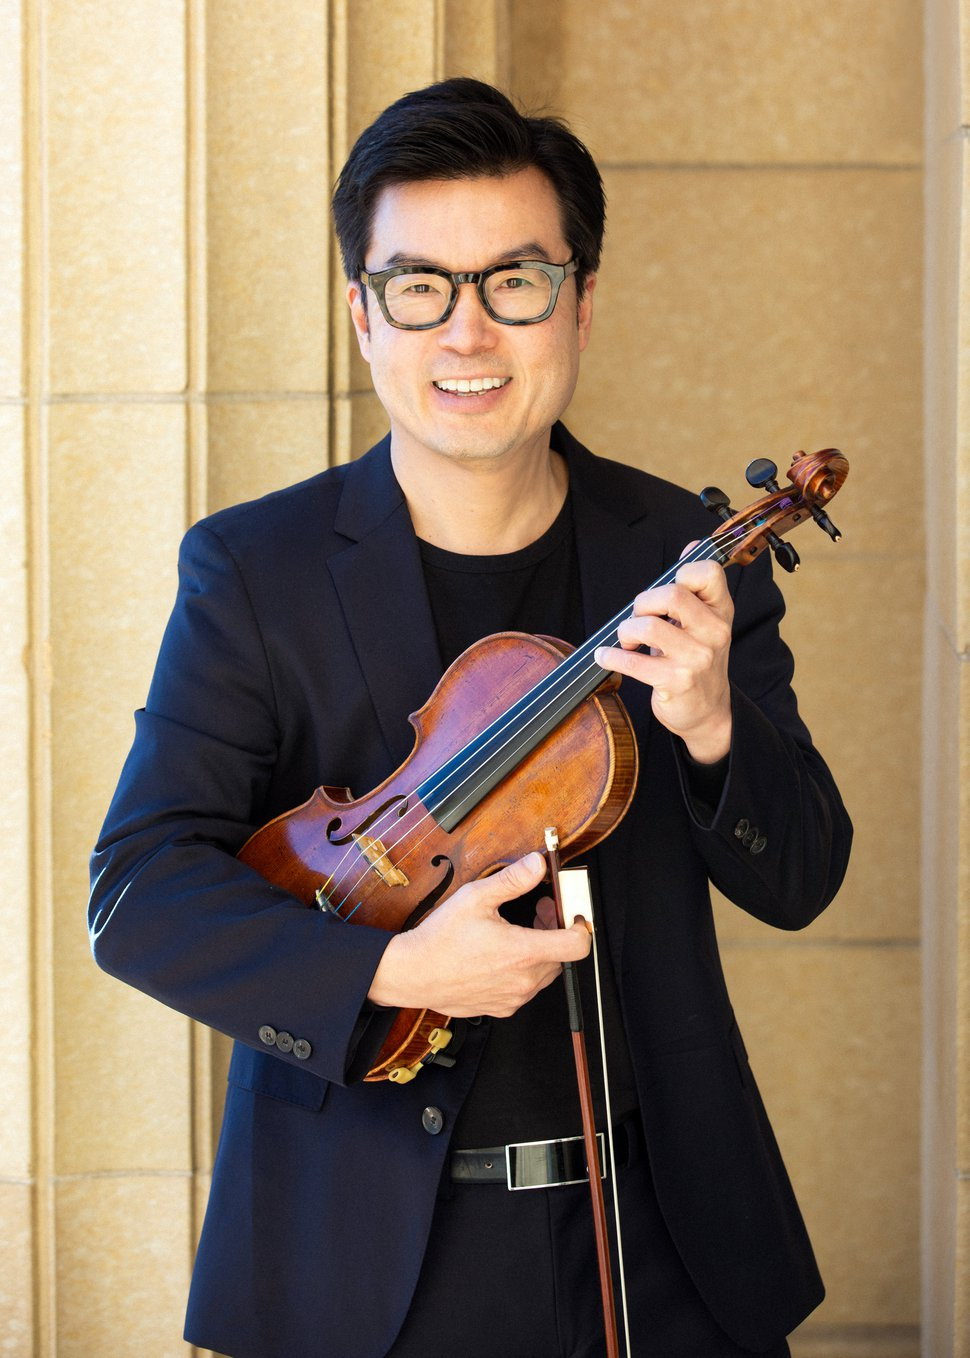 (Photo courtesy of David Park) David Park, the assistant concertmaster of the Utah Symphony, is a classical music expert and a connoisseur of wine.